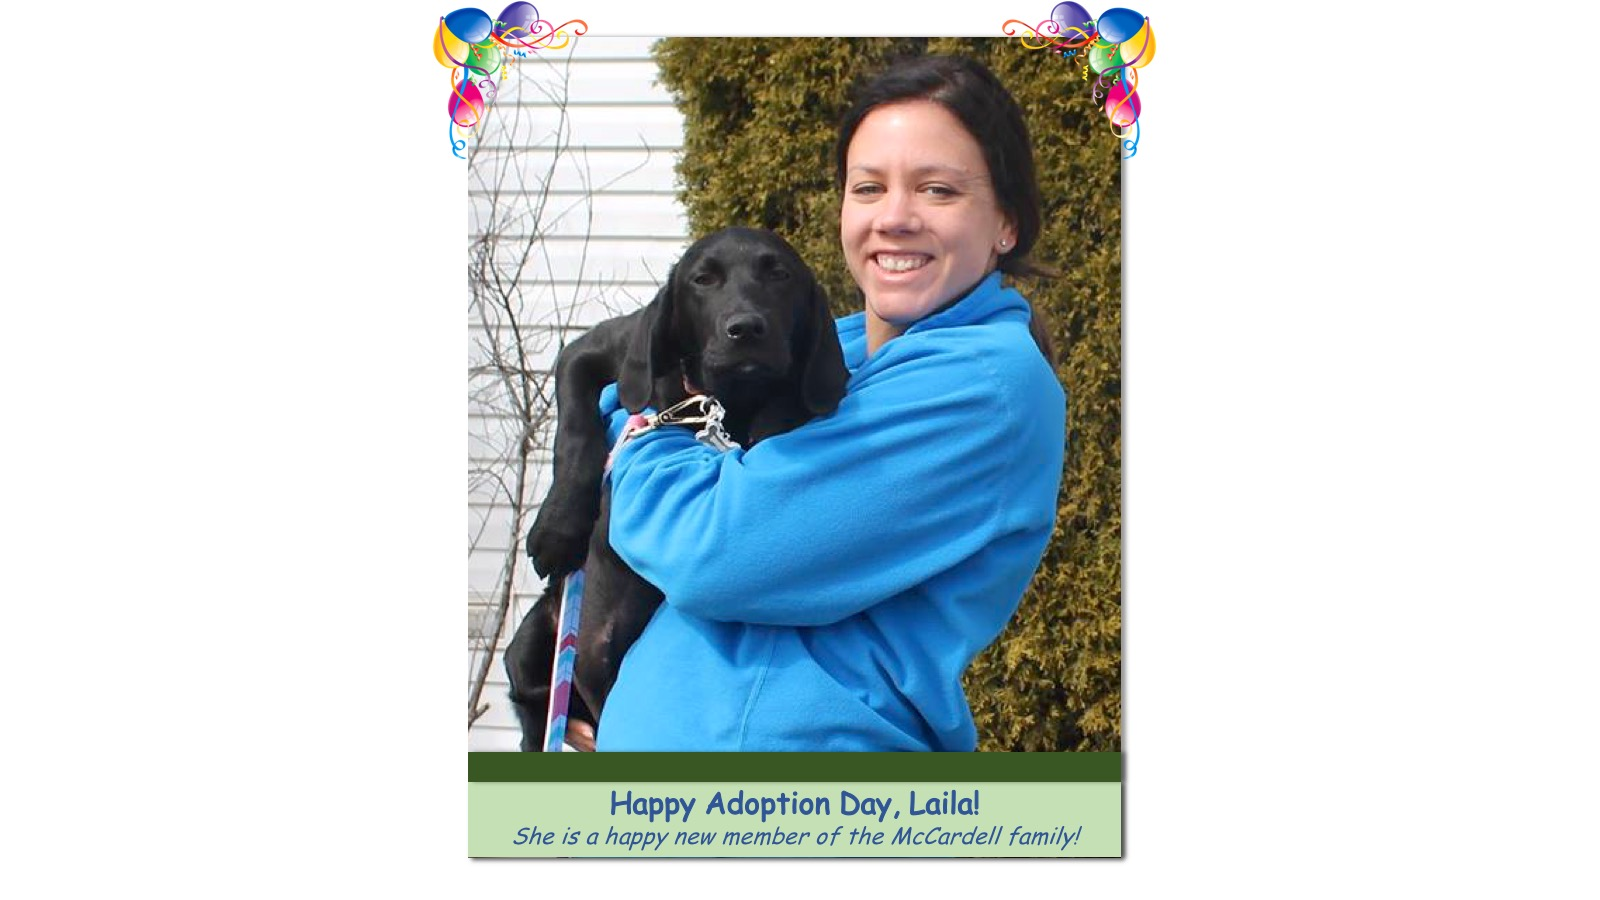 Laila_Adoption_Photo_2018.jpg